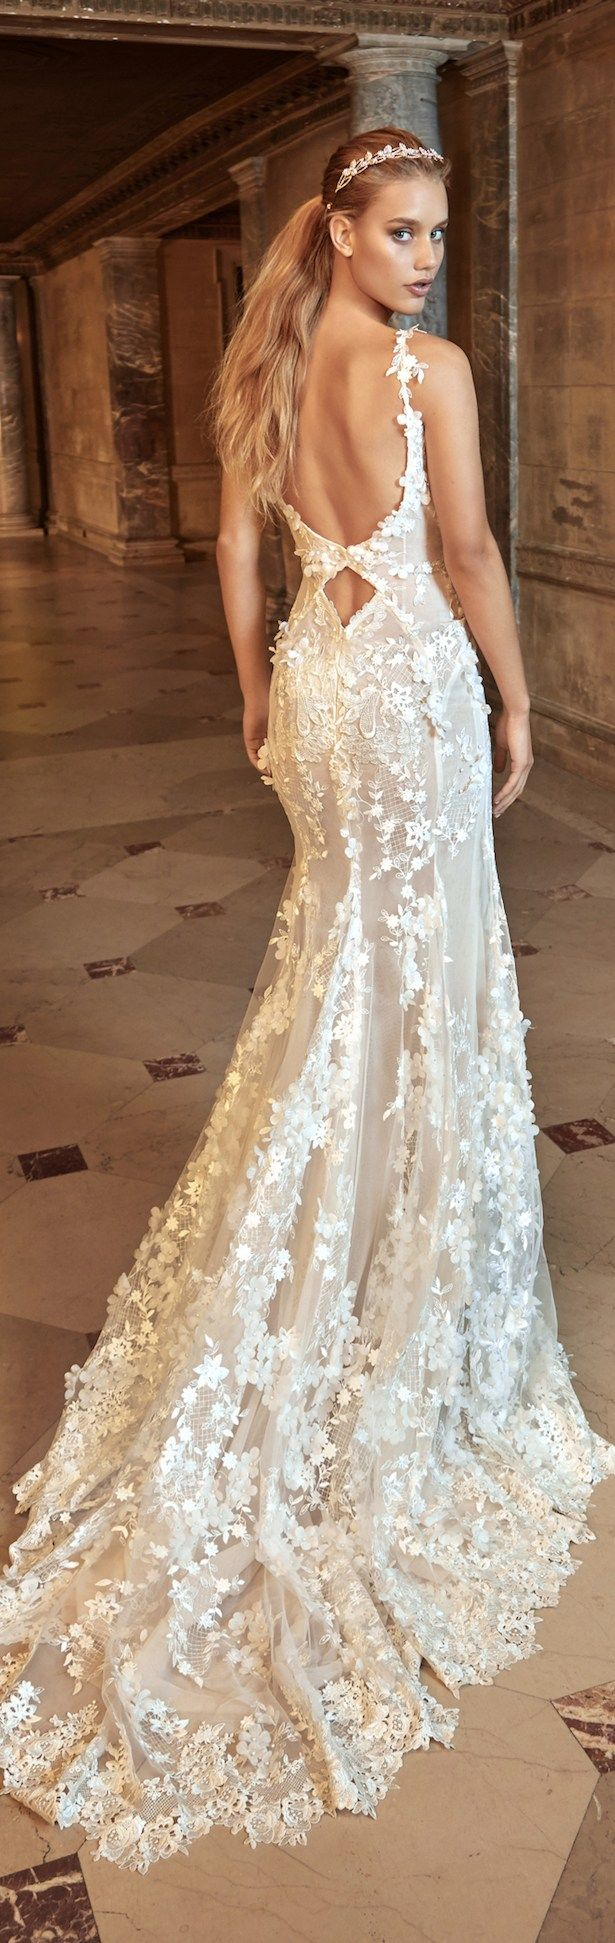 Galia lahav bridal collection le secret royal ii elegantnÍ